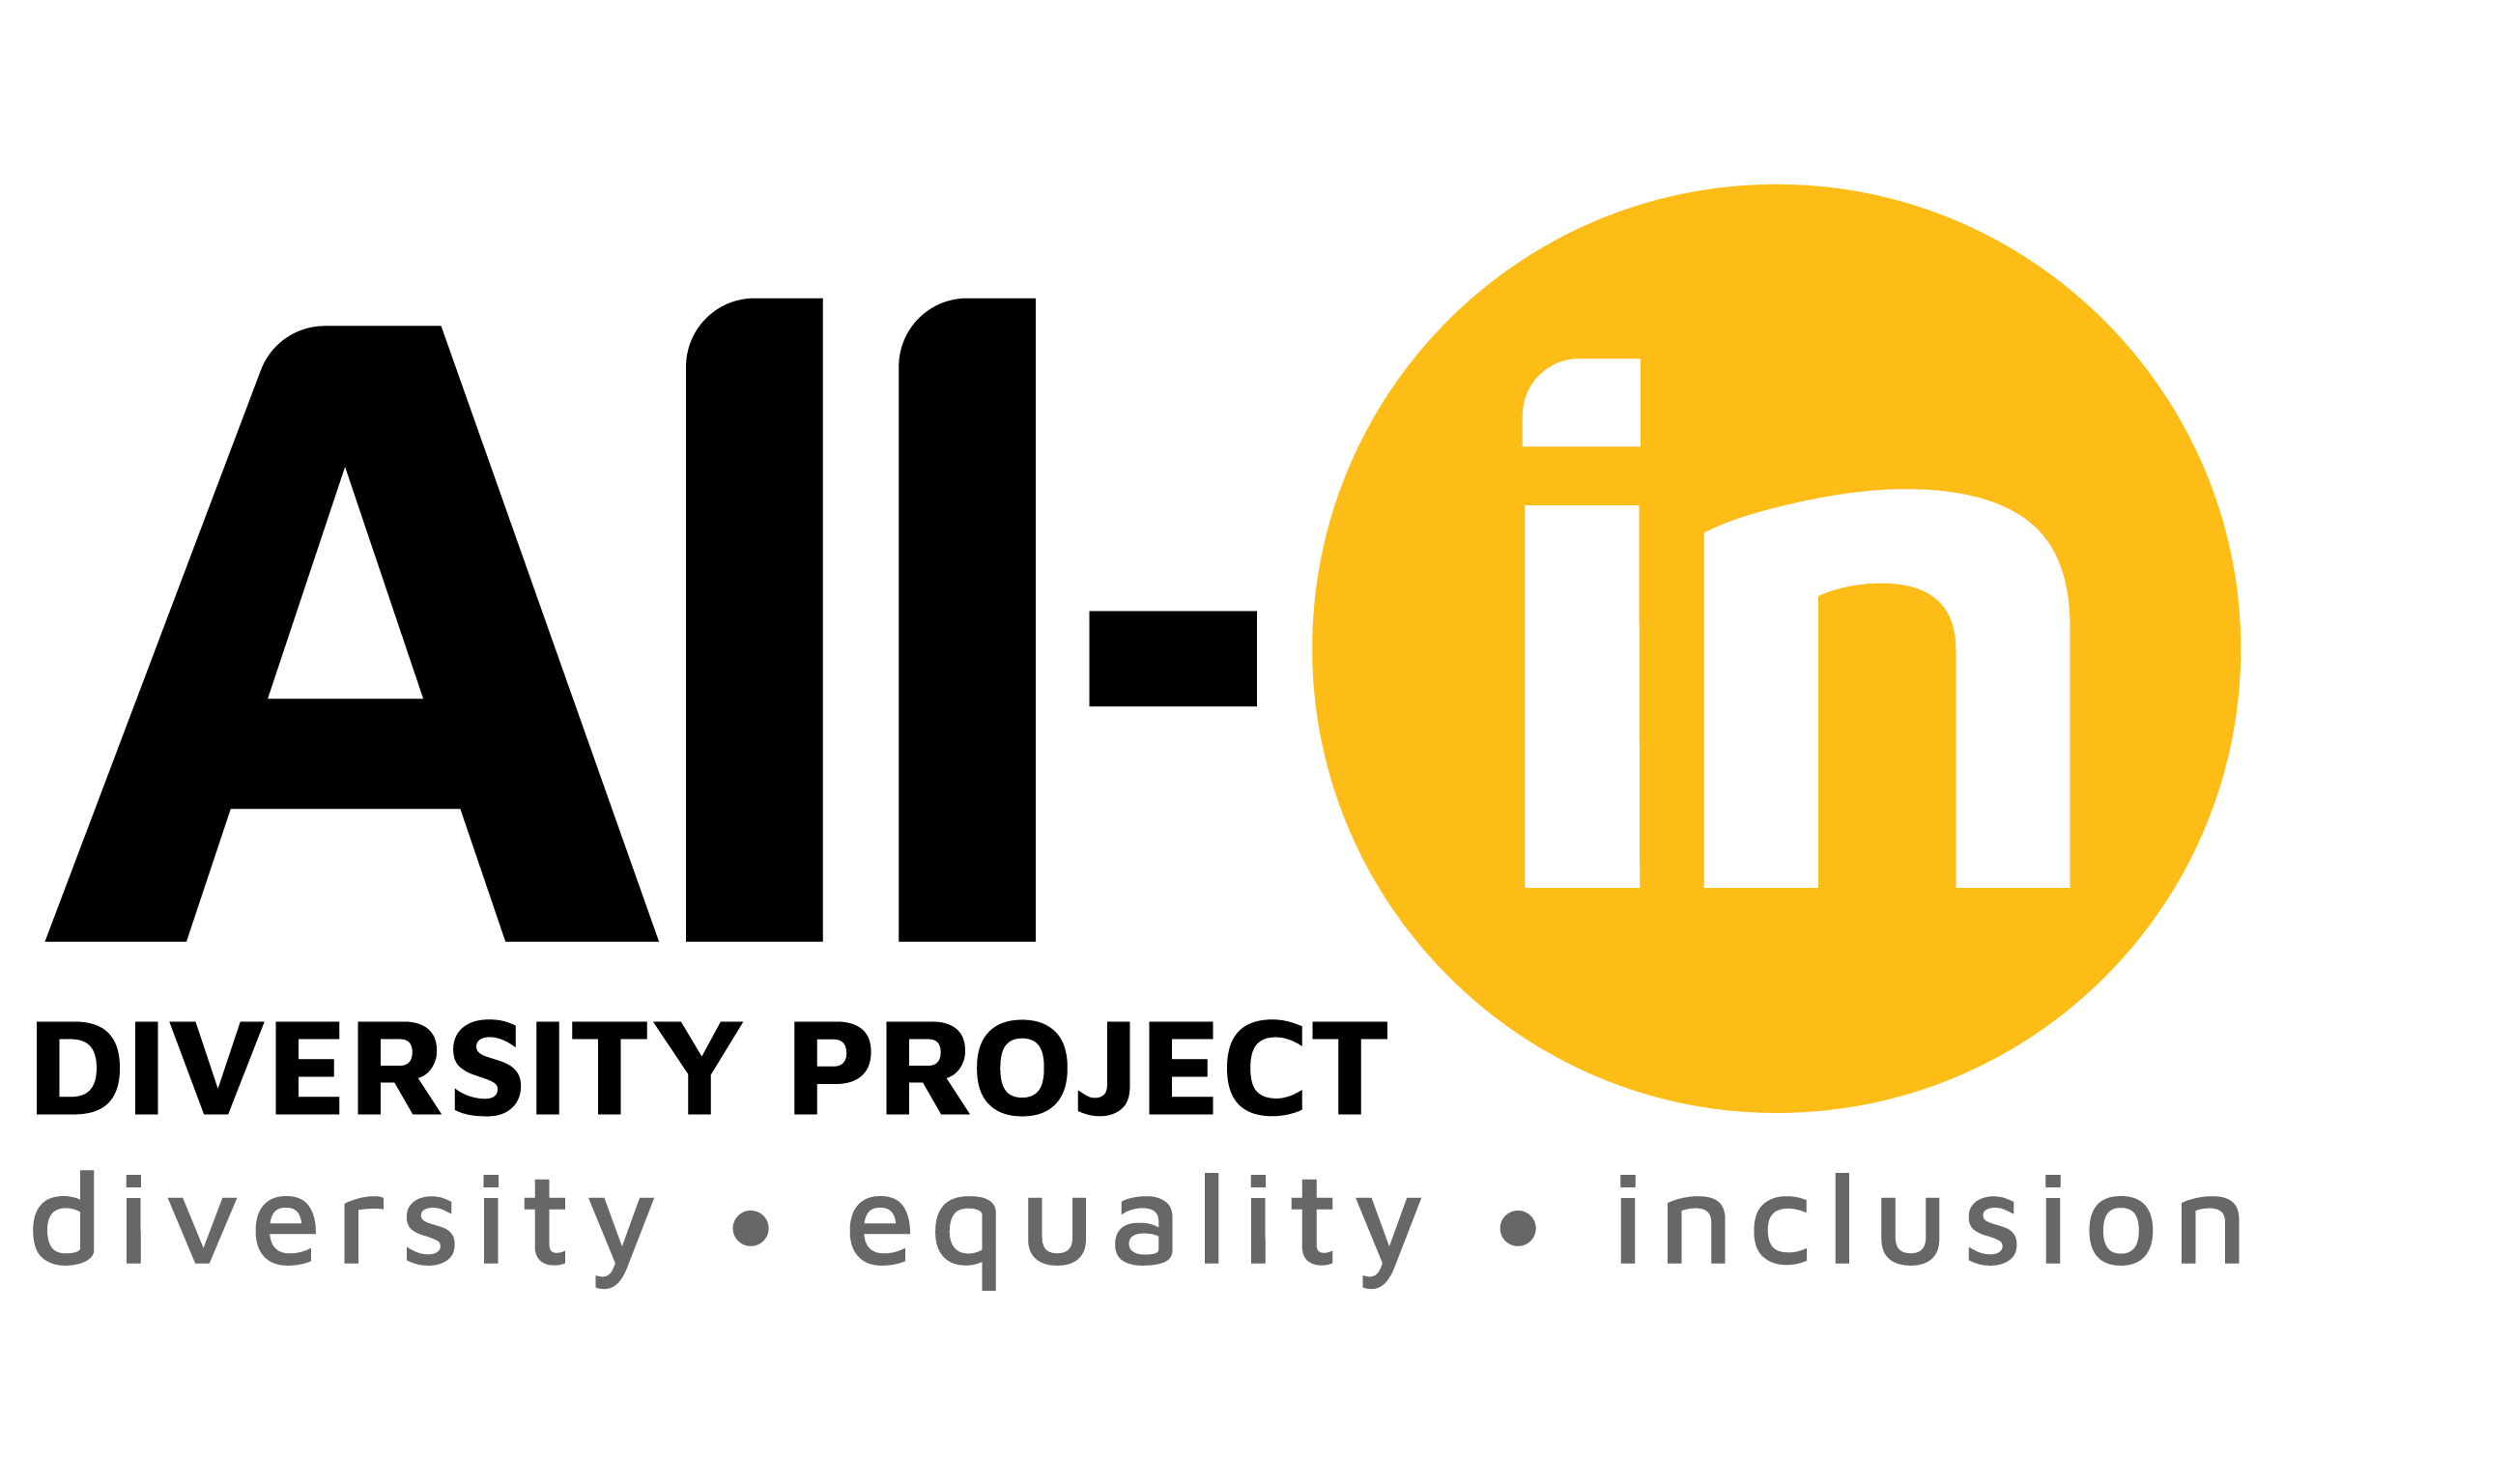 Third edition of the All-Index™ Diversity, Equality & Inclusion Survey now open